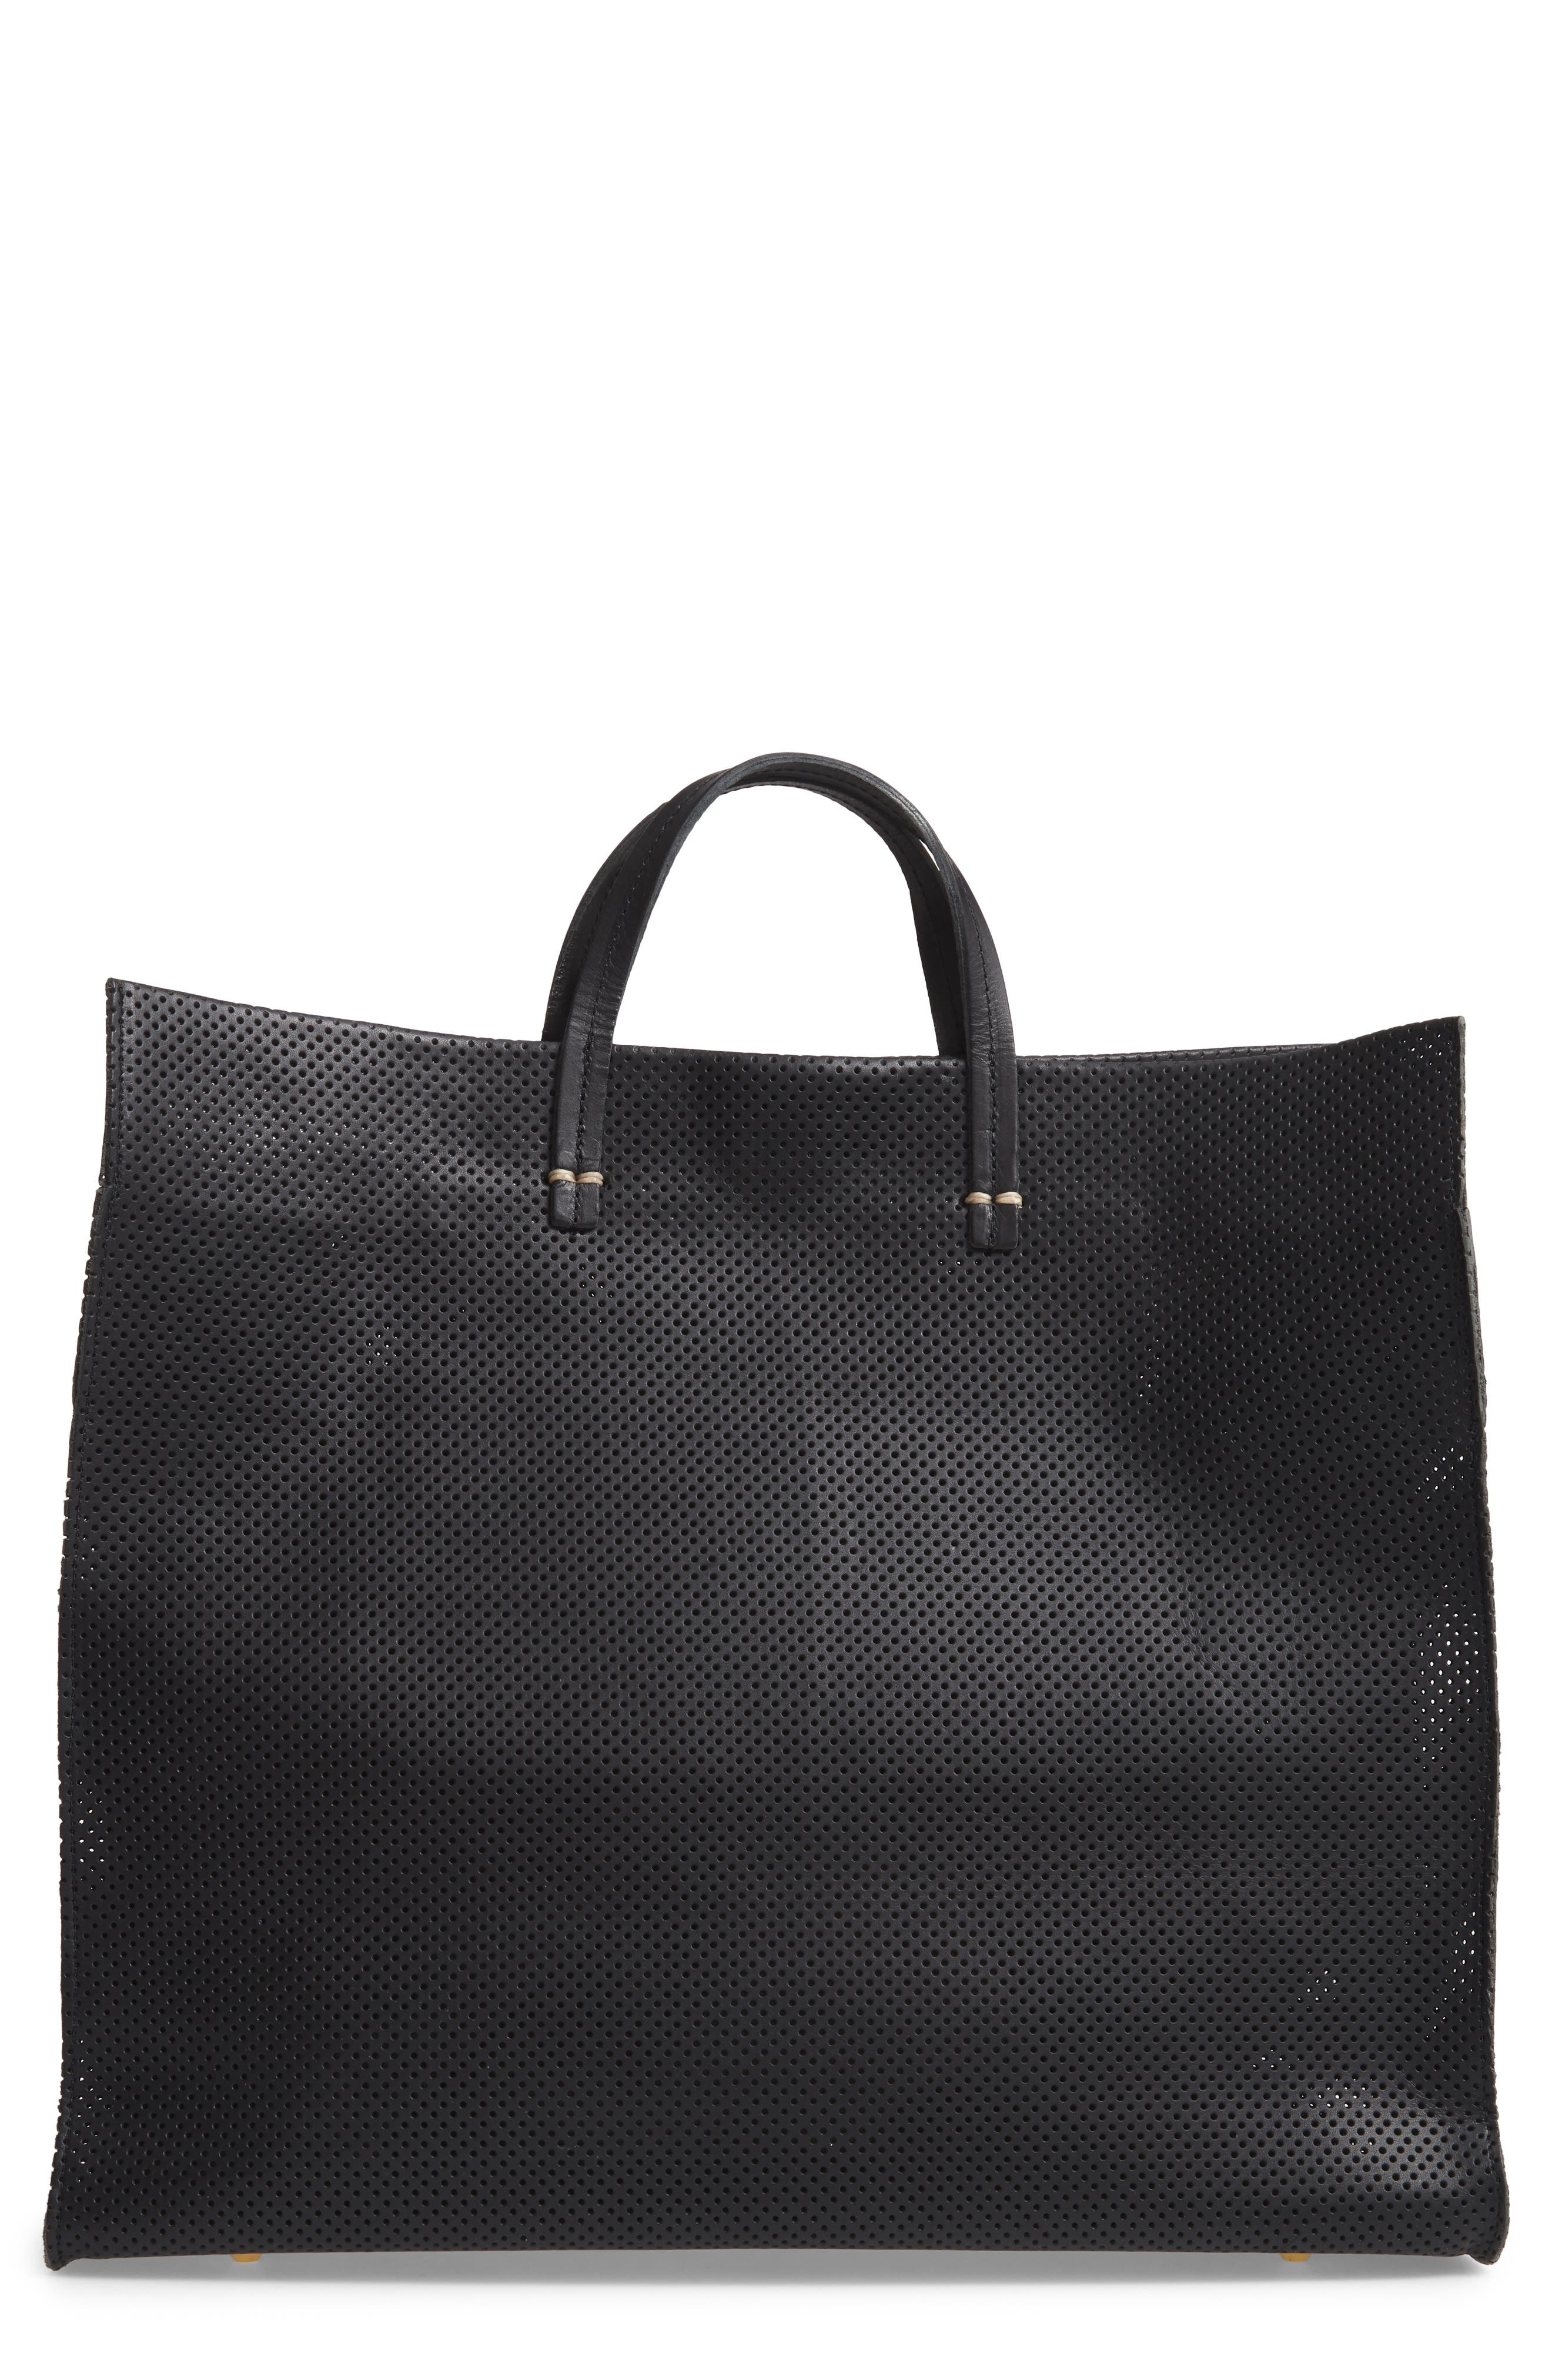 Simple Perforated Leather Tote,                             Main thumbnail 1, color,                             BLACK PERF